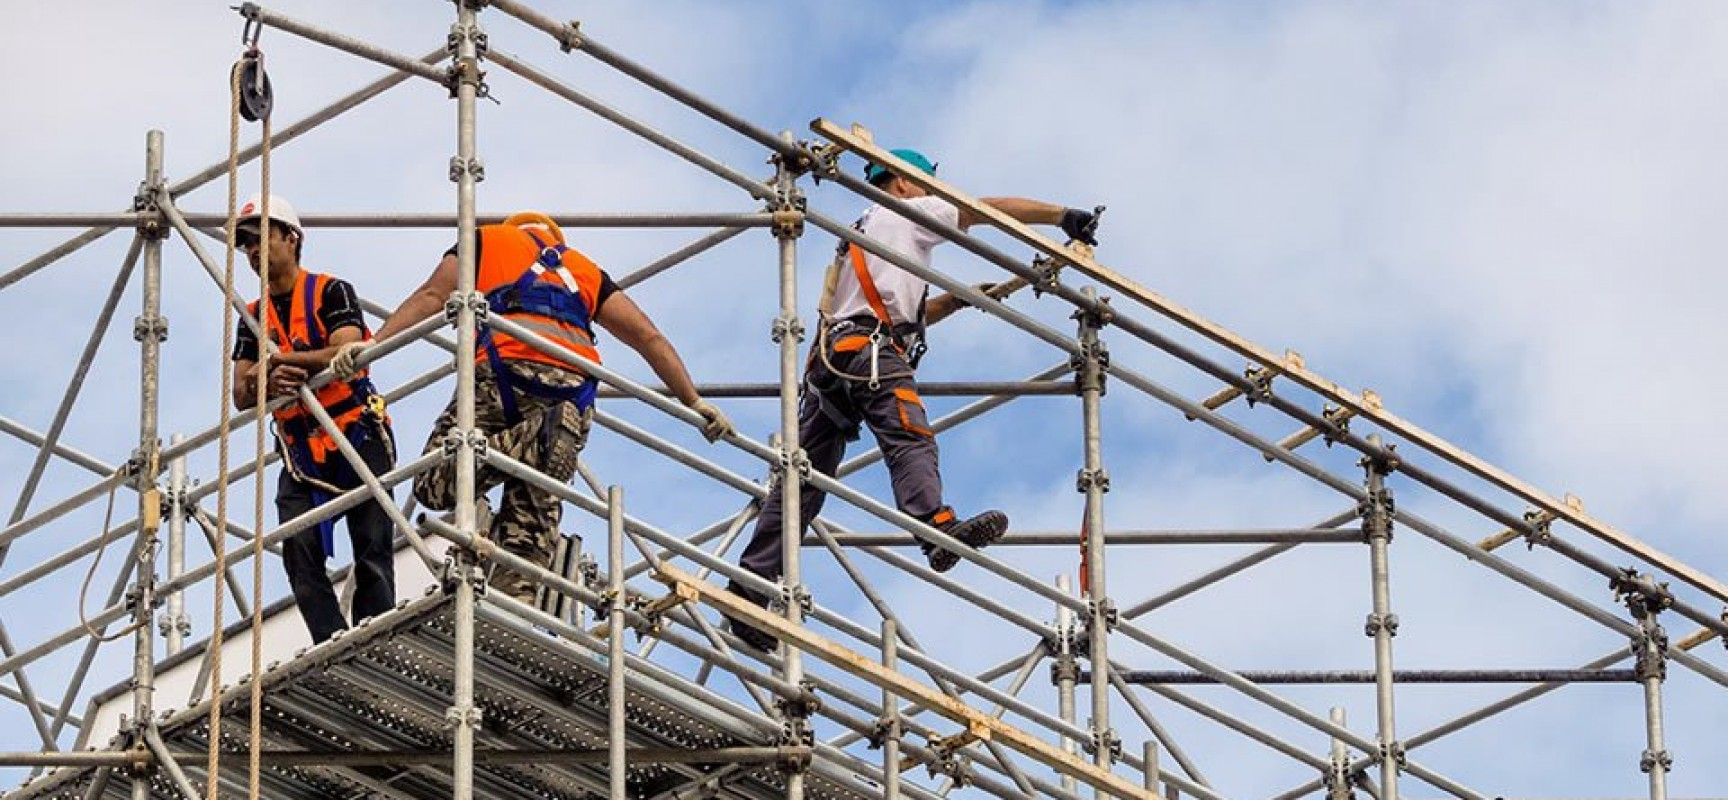 Scaffolding Rental Services — The Importance of Choosing the Right Company